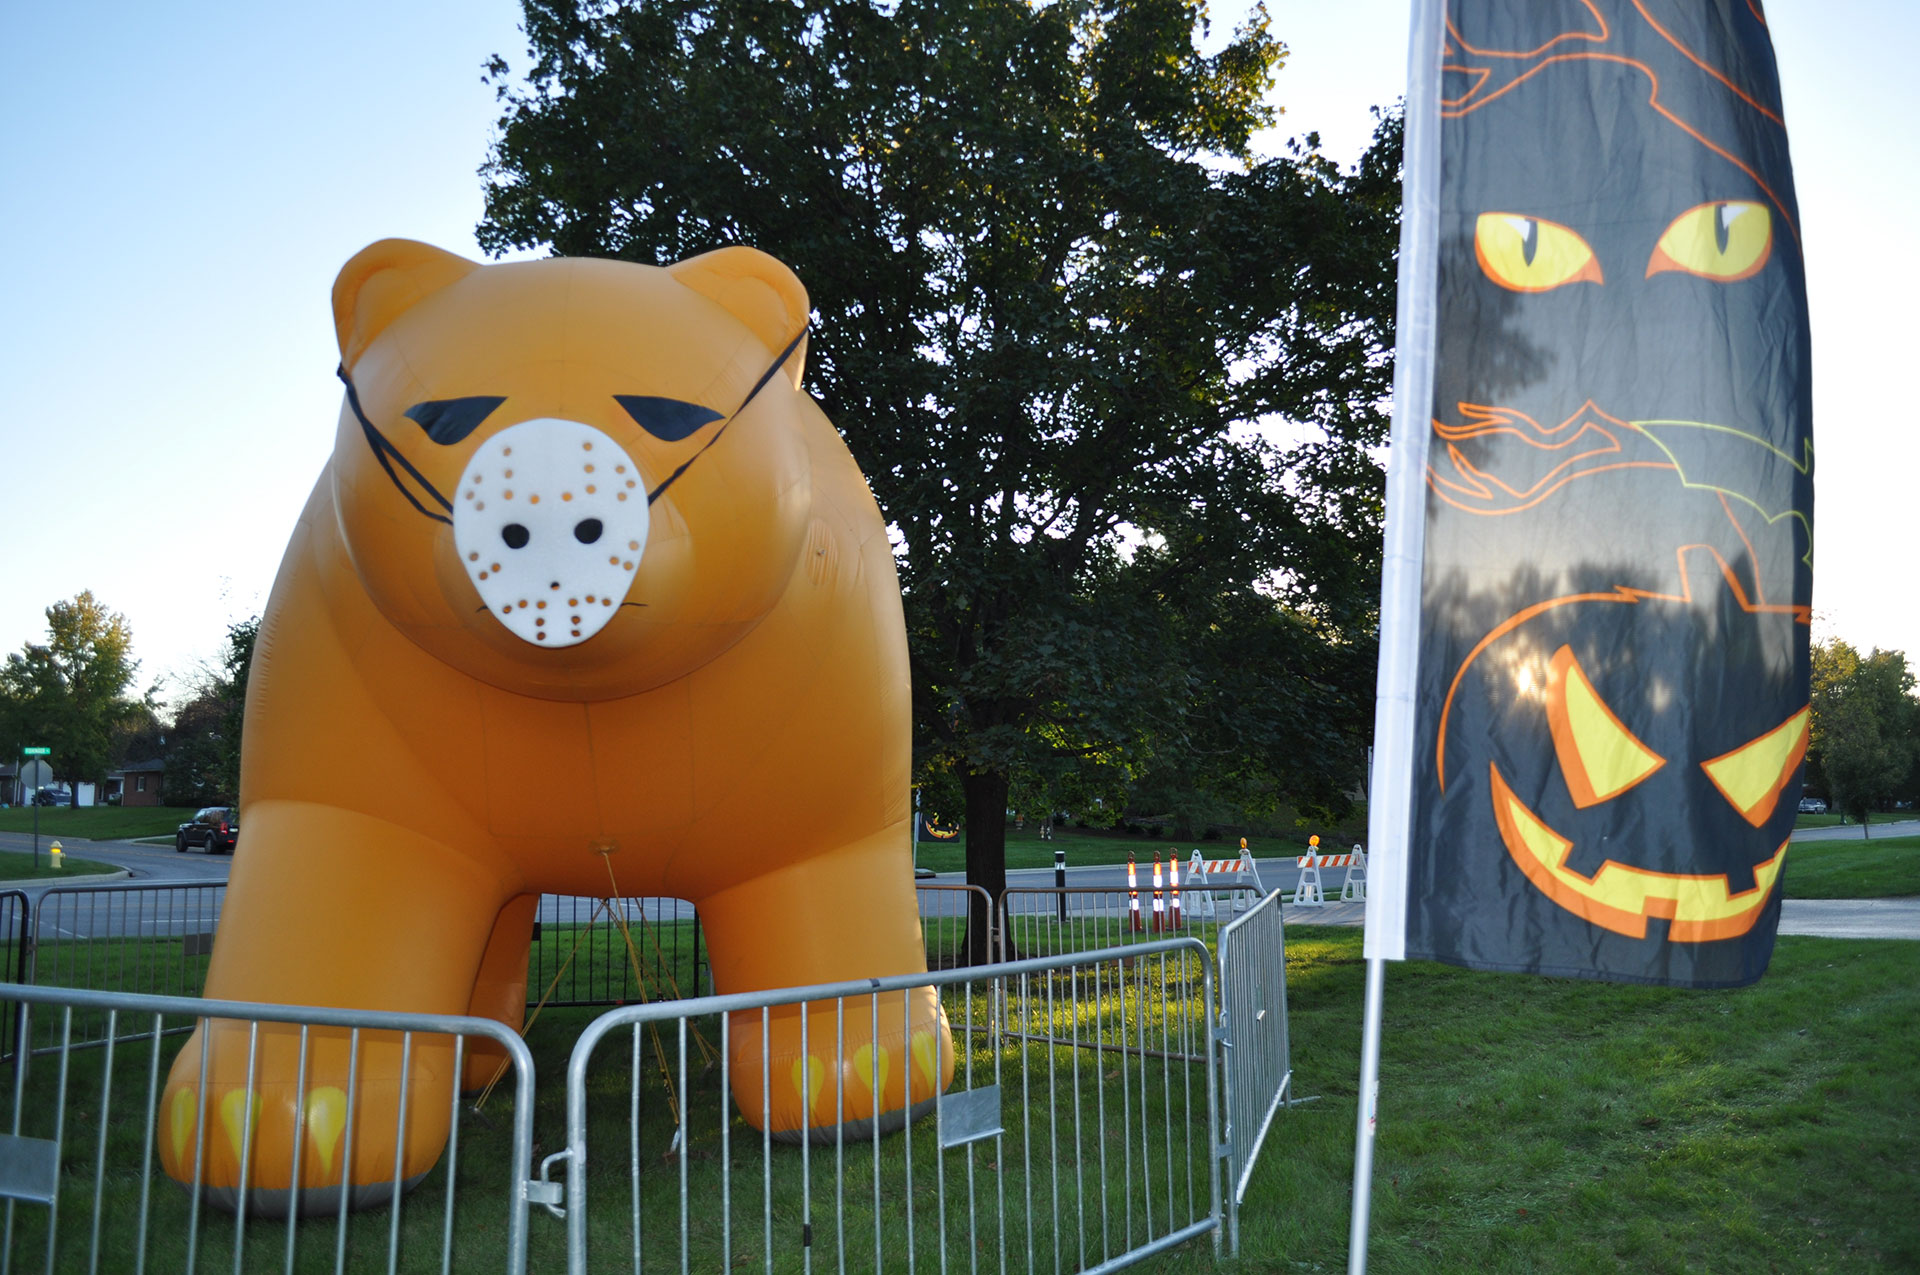 UACA's Golden Bear Scare